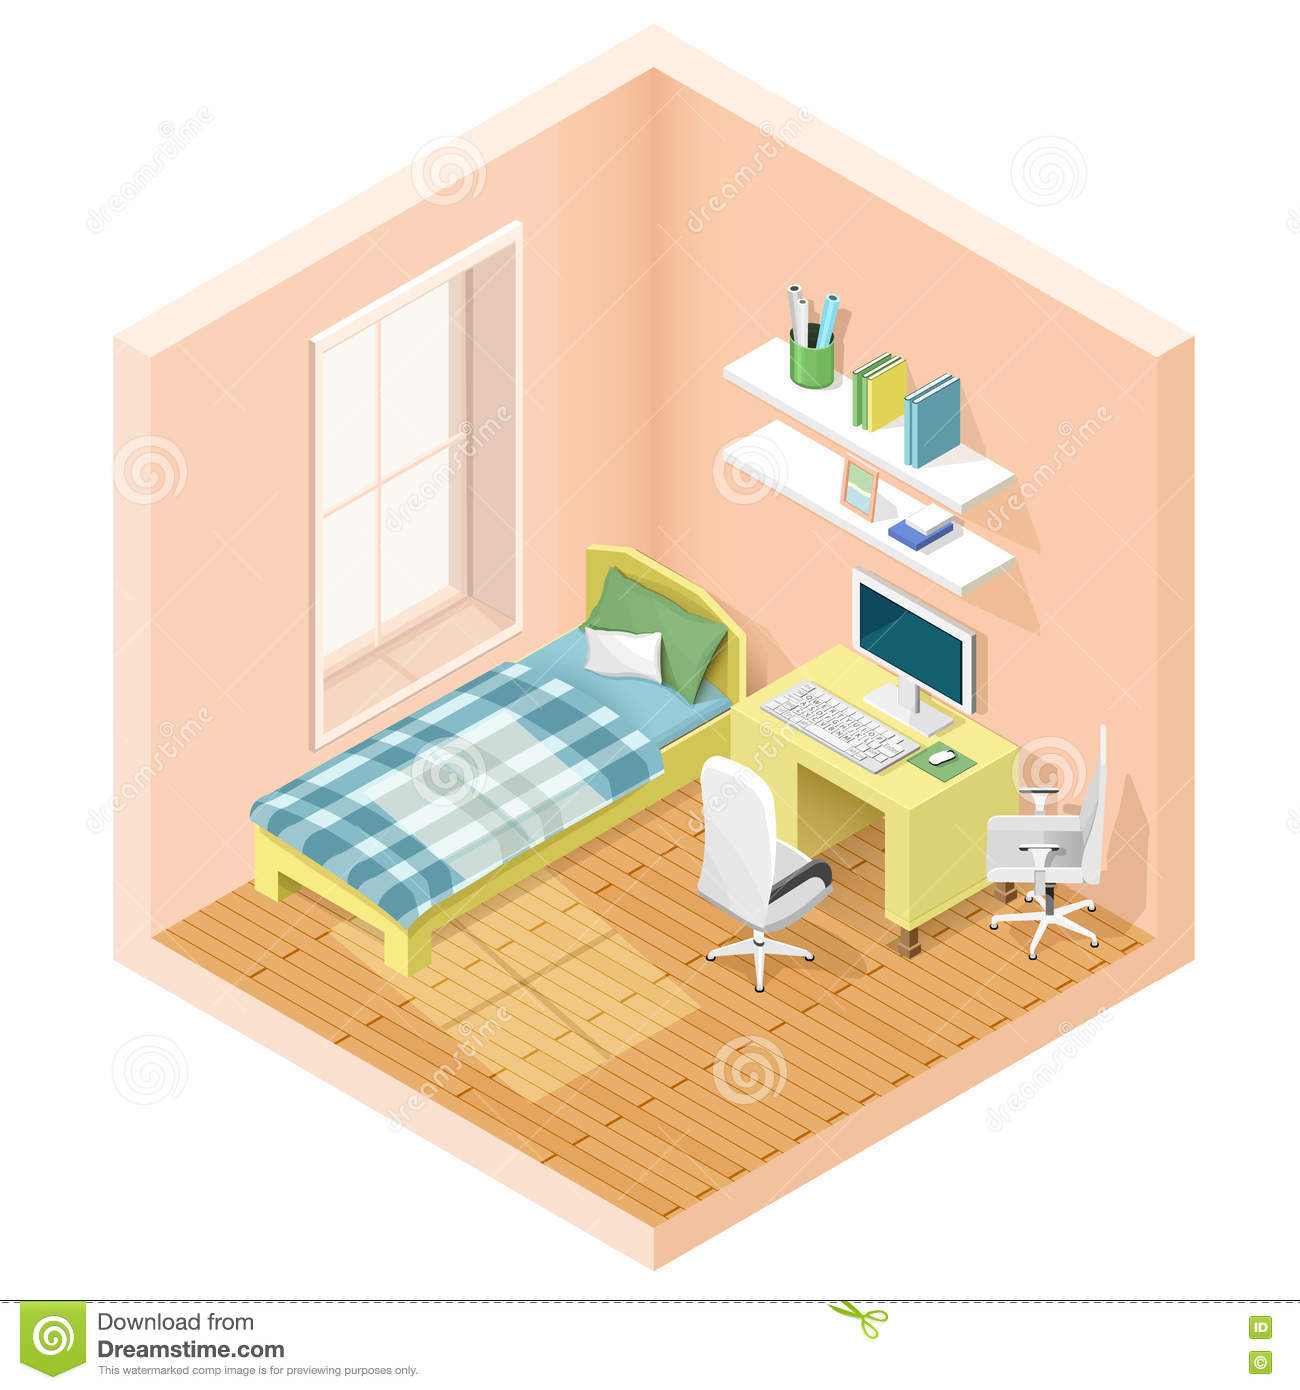 Vector Isometric Rooms Icon Stock Vector: Modern Graphic Isometric Room With Bed And Workplace